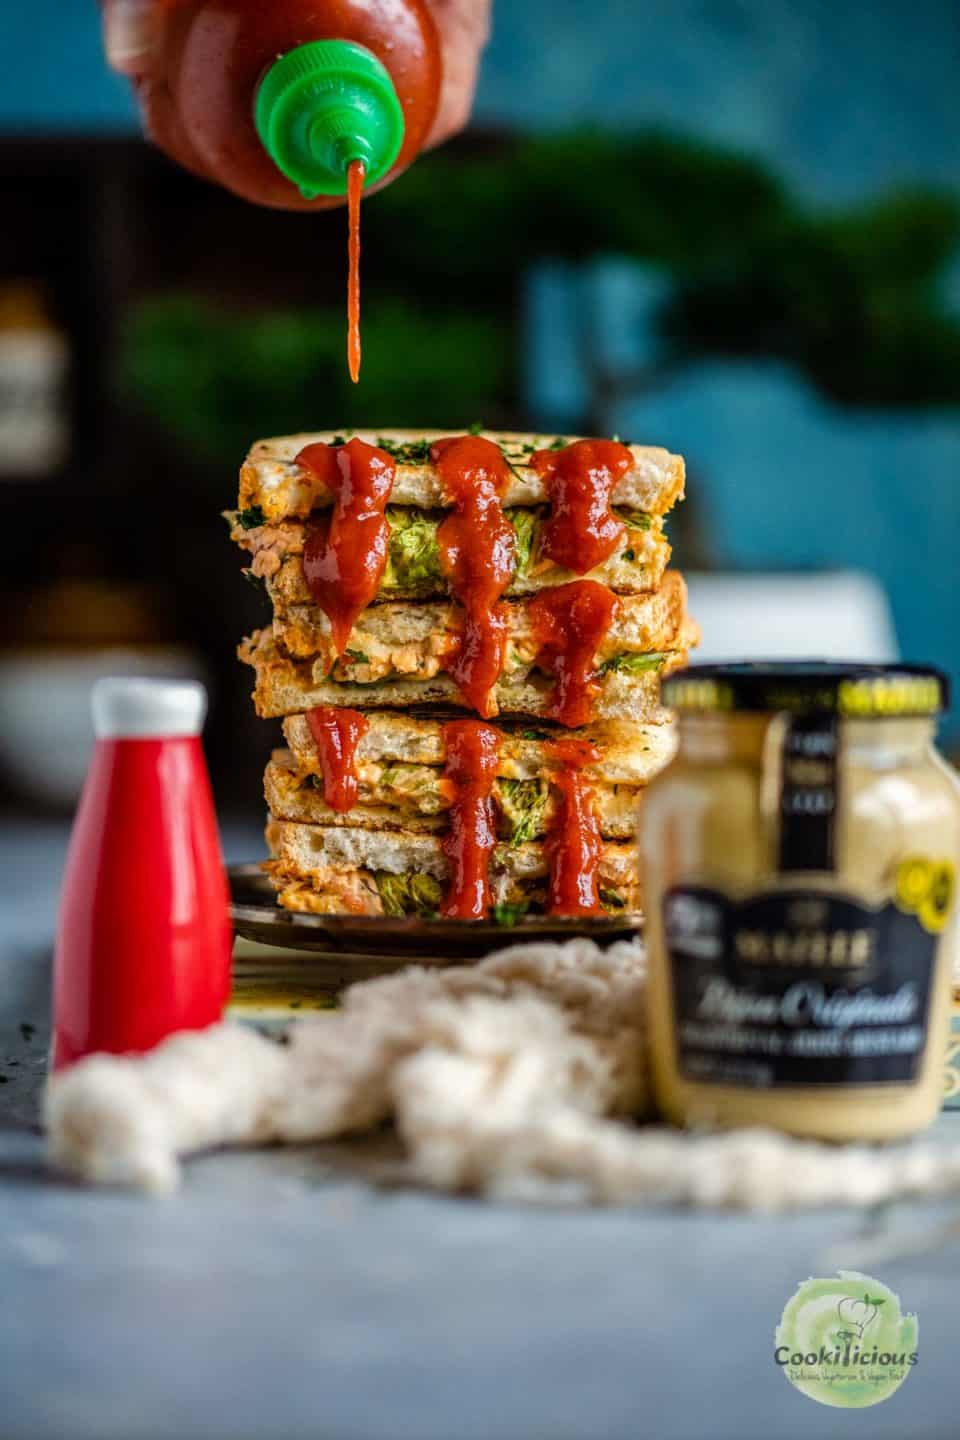 sauce being poured on a stack of Veggie Sandwiches